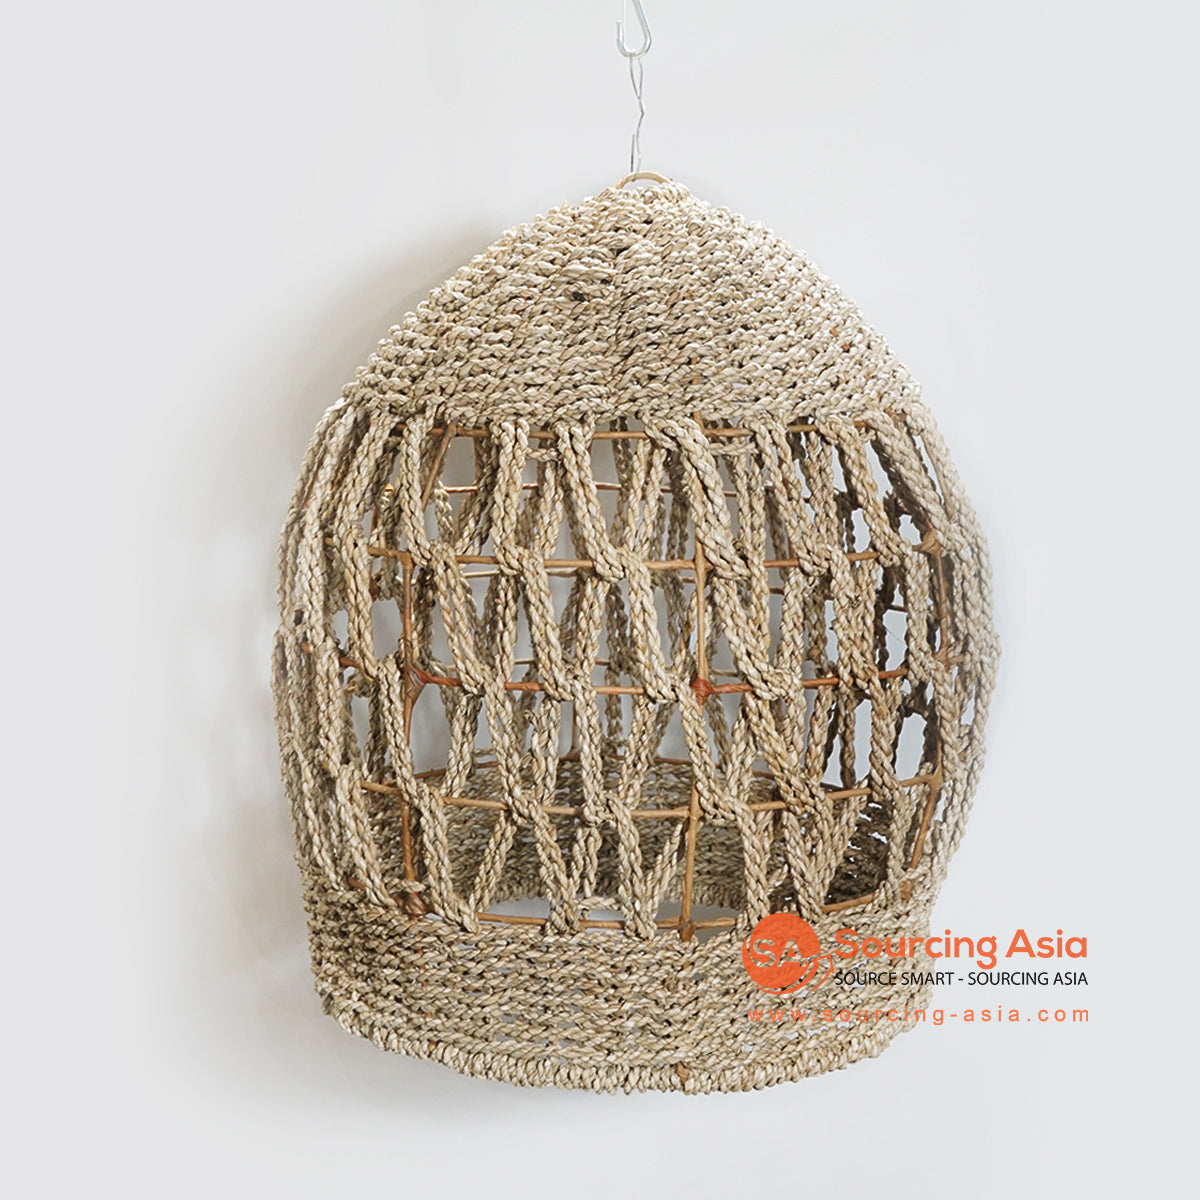 HBSC192-1 SEA GRASS HANGING LAMP